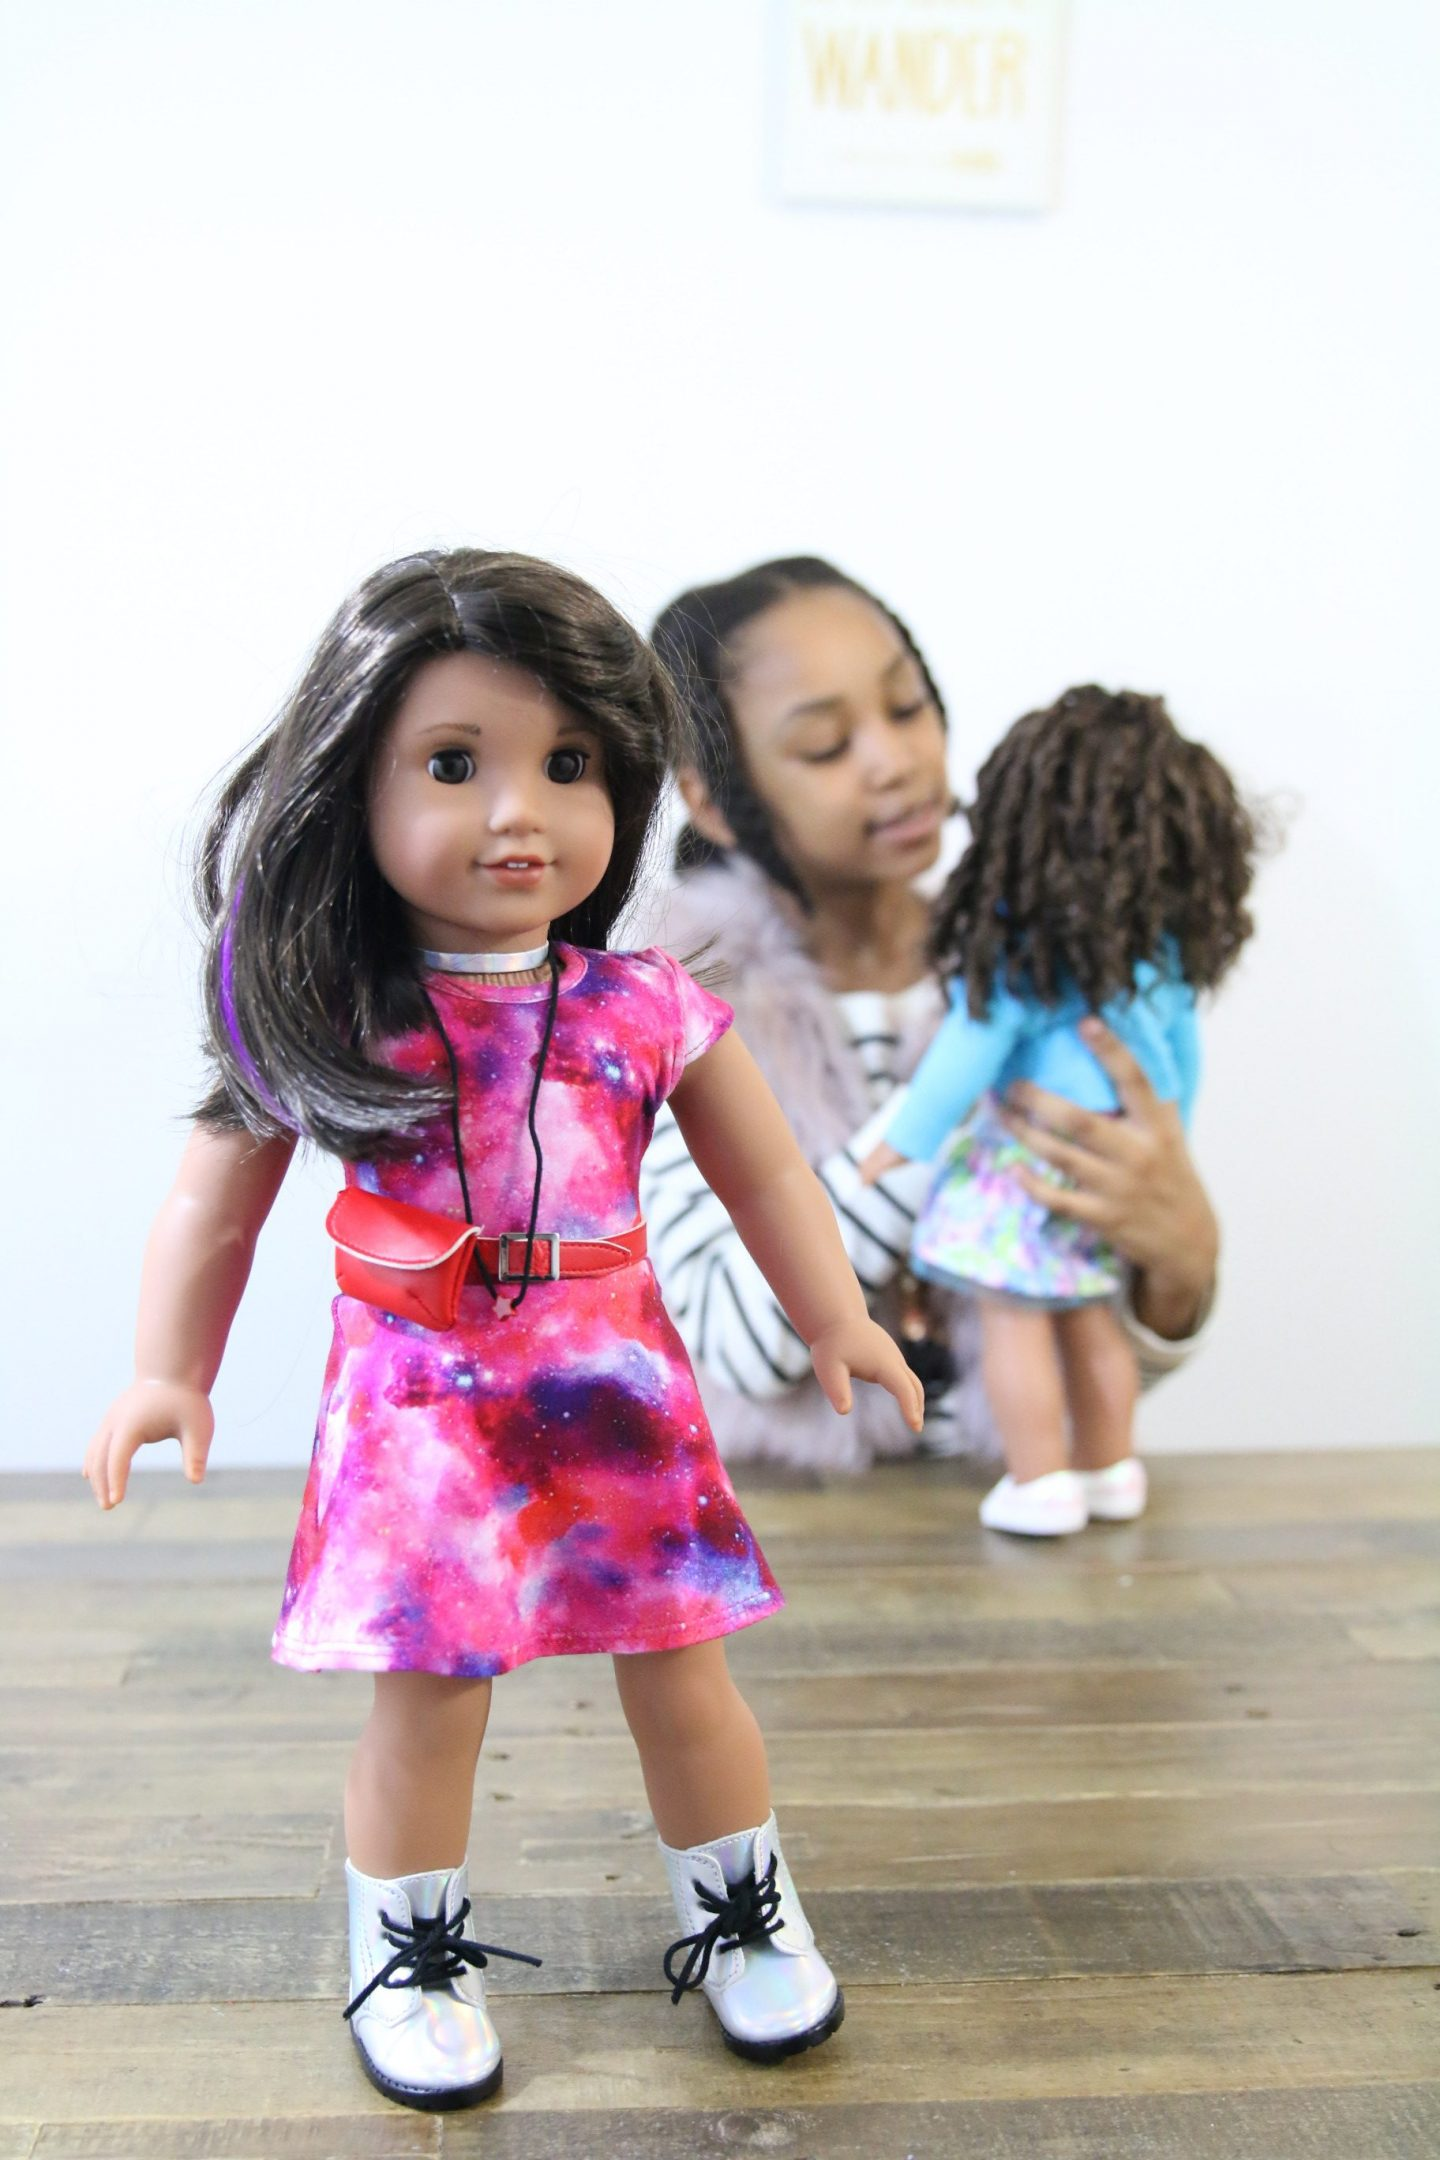 Encouraging STEM Goals with American Girl of the Year, Luciana Vega